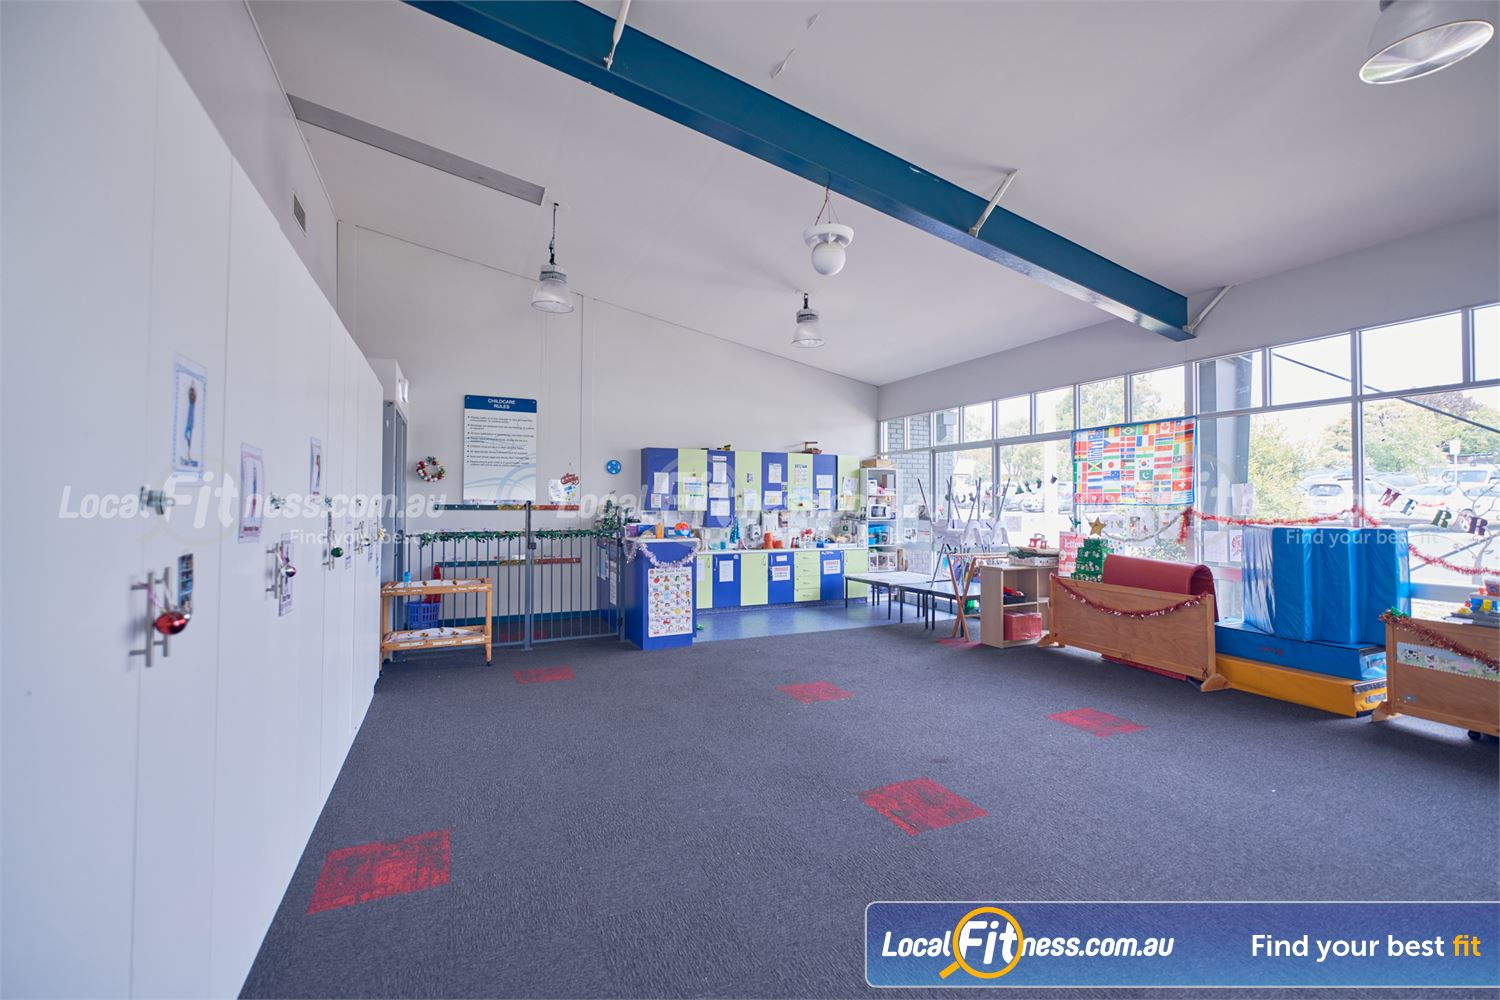 Knox Leisureworks Near Ferny Creek On-site Boronia Child care for busy parents.